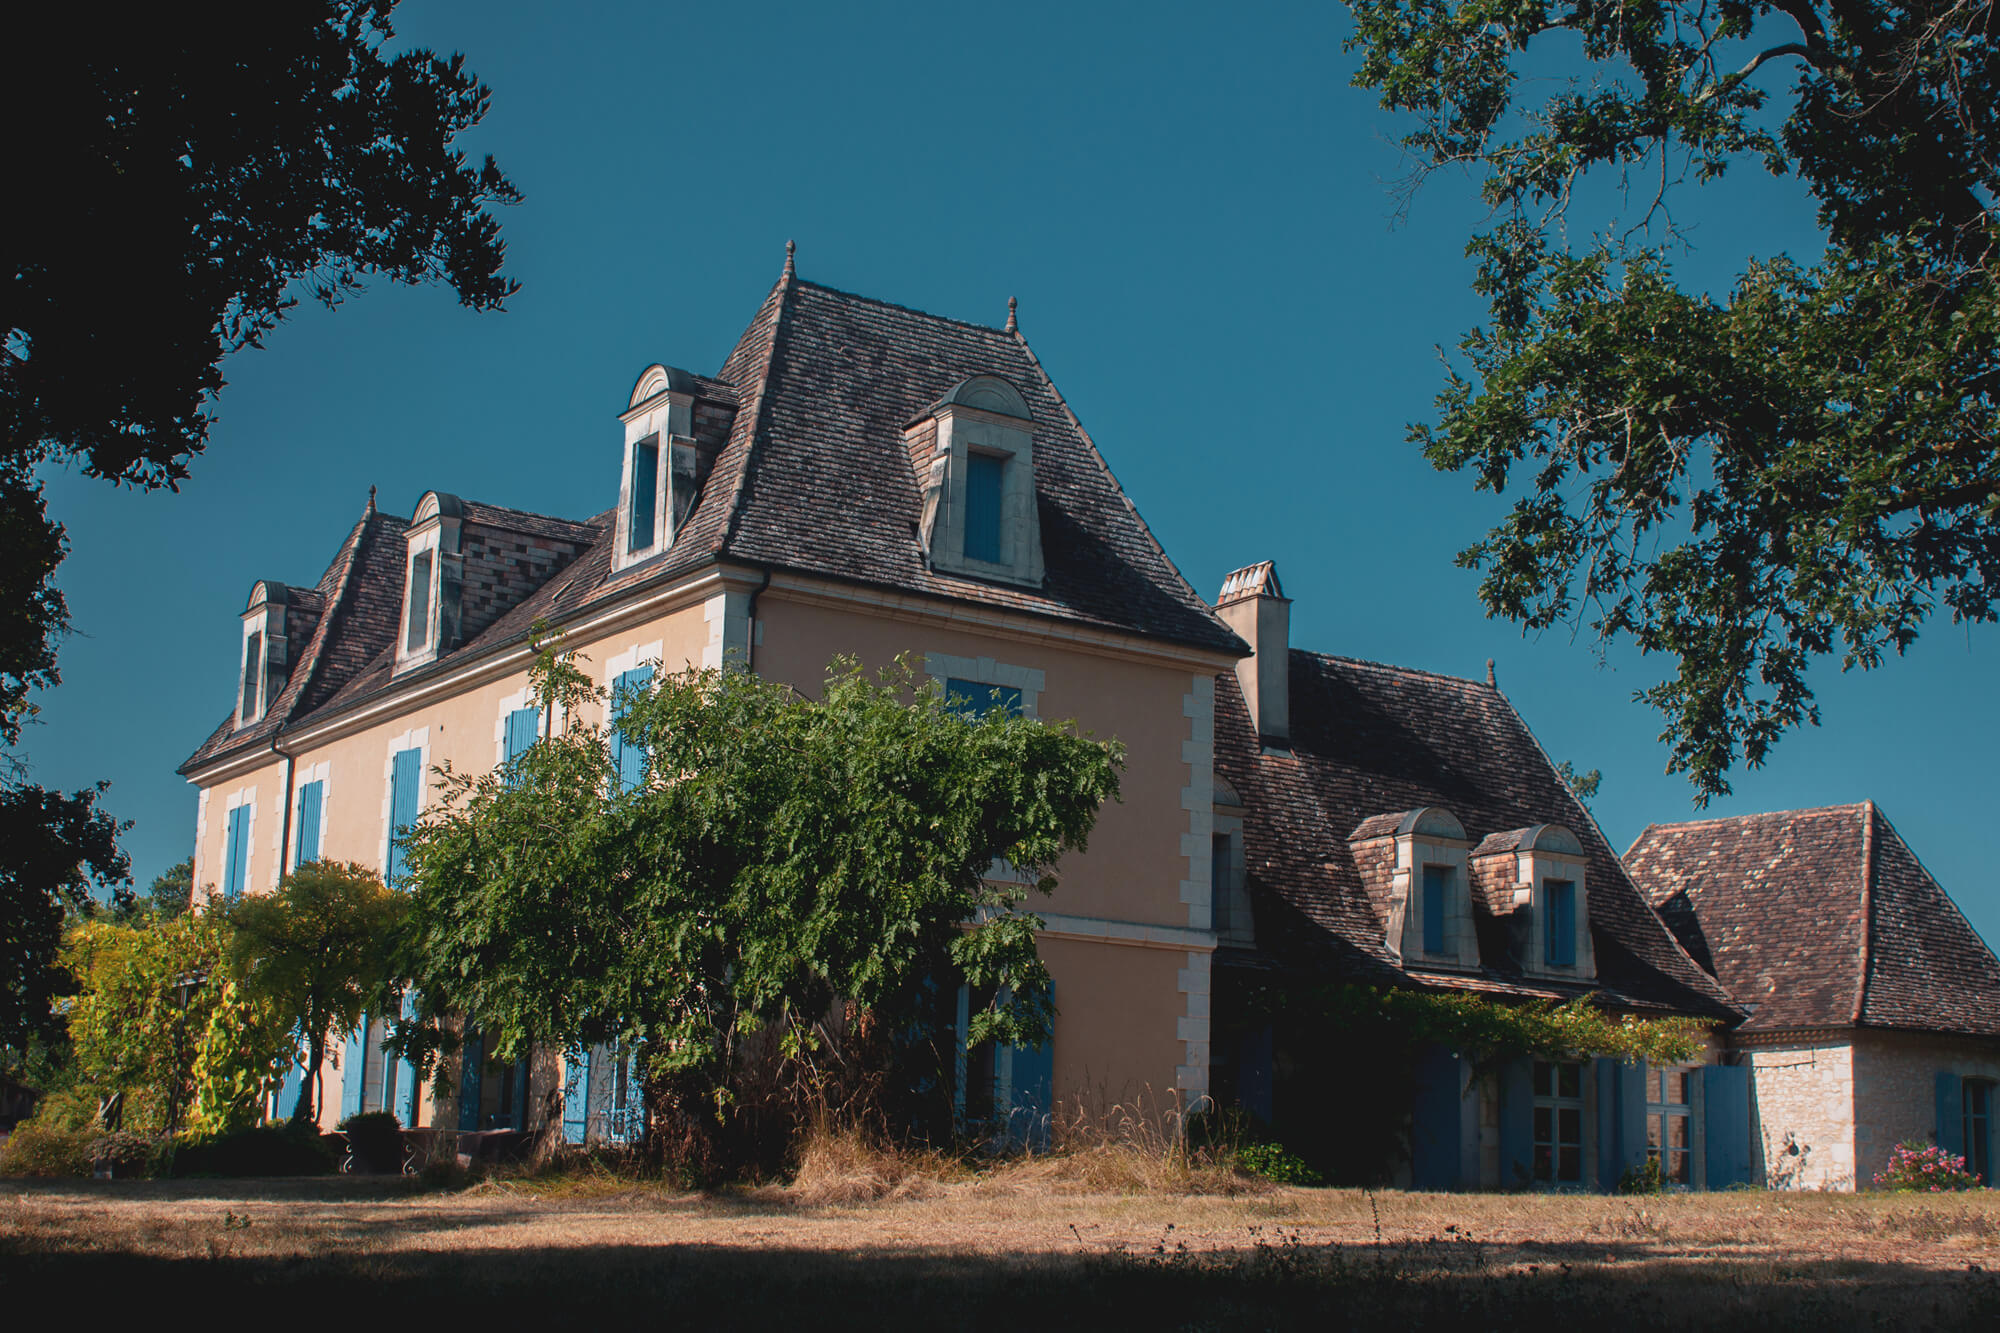 Bed and breakfast, le château gauthié